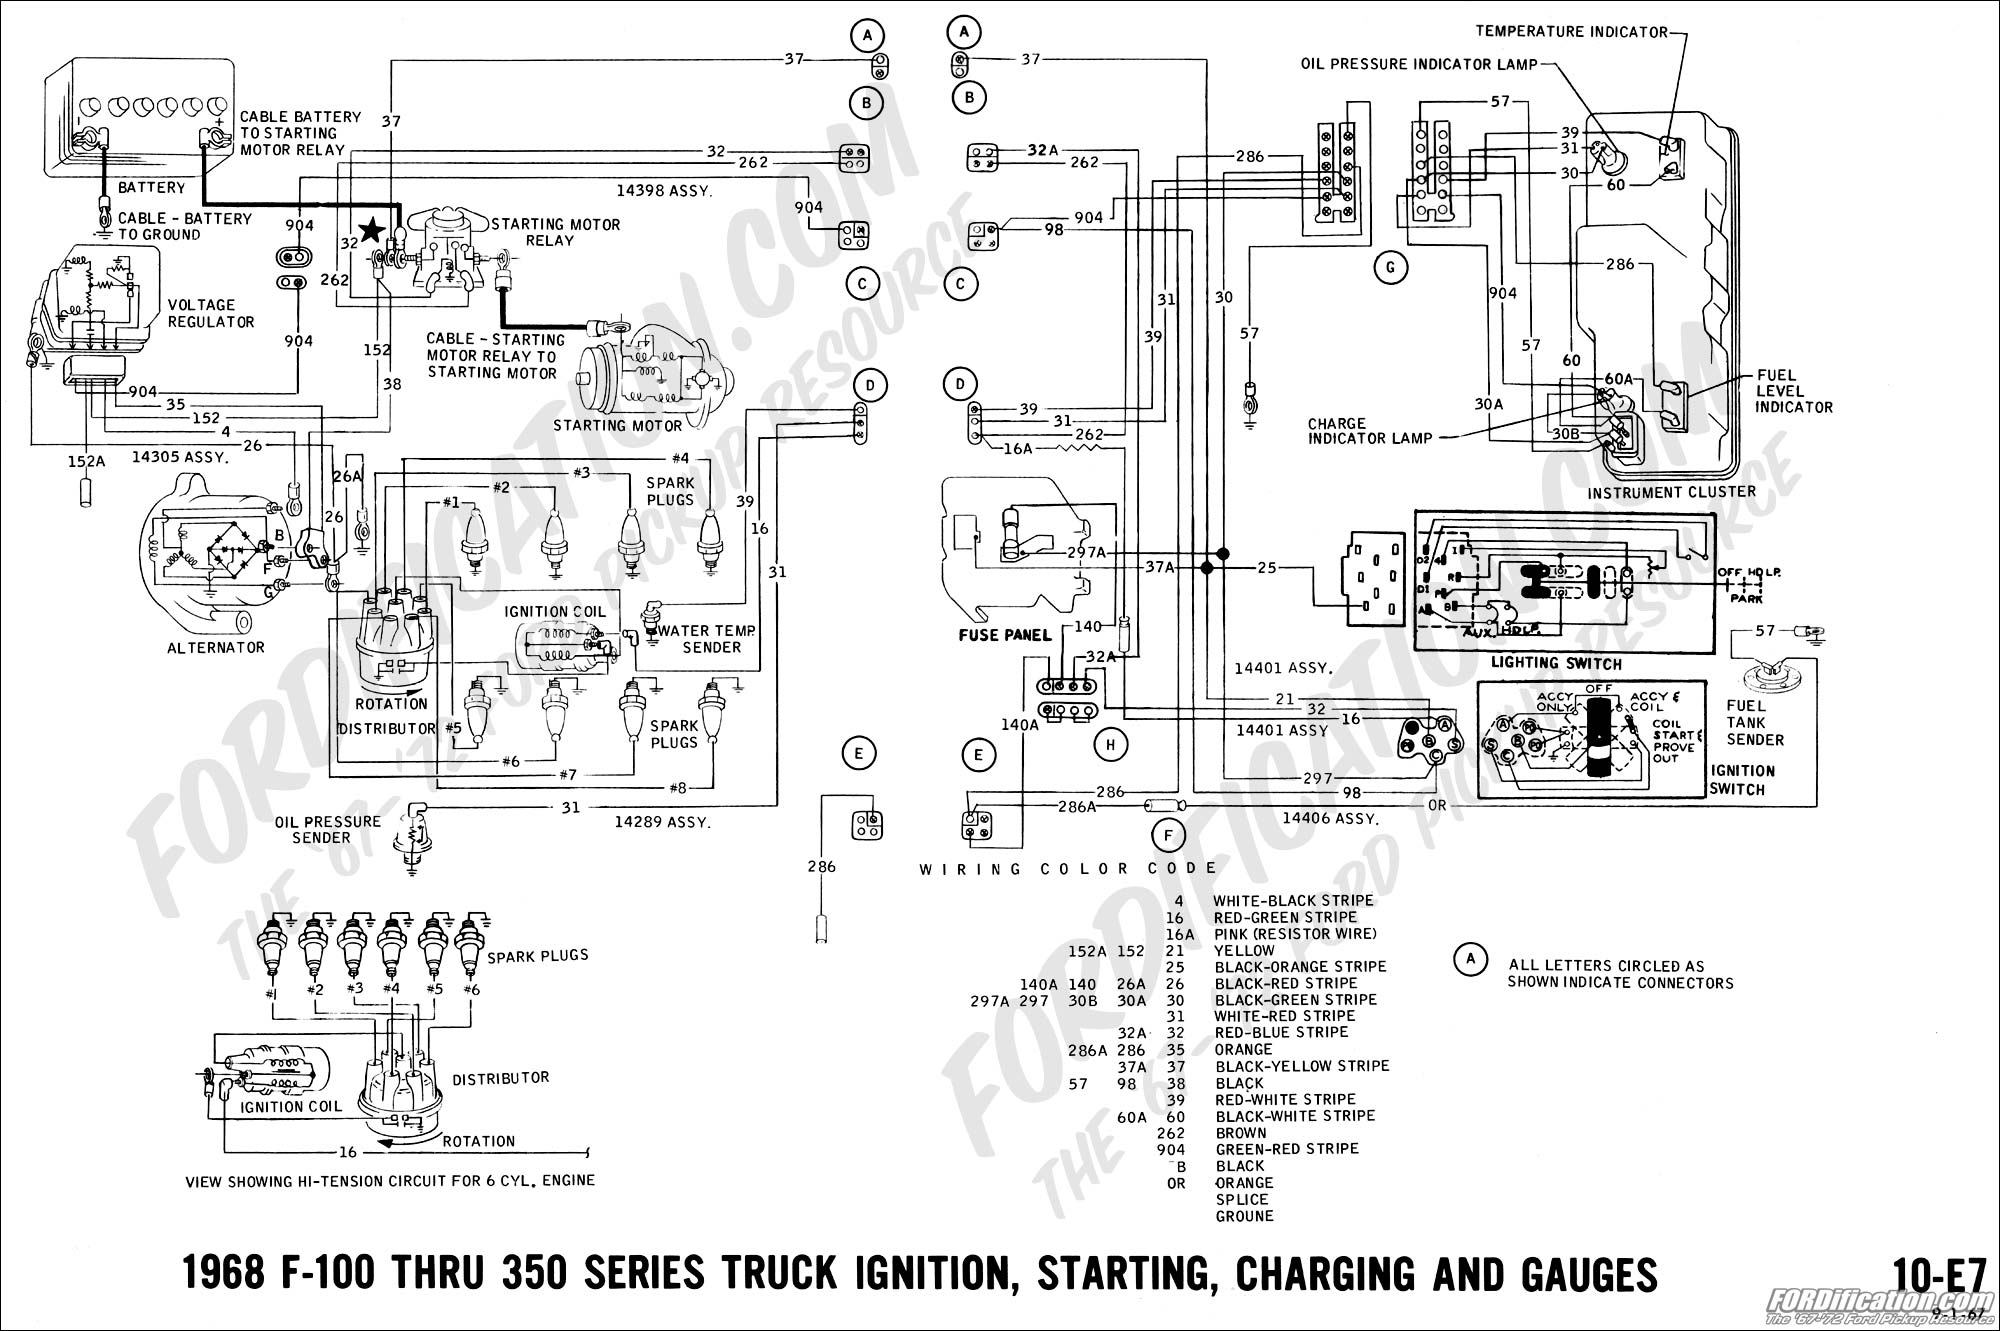 2004 Chrysler Pacifica Wiring Diagram Free Download Wiring Diagram